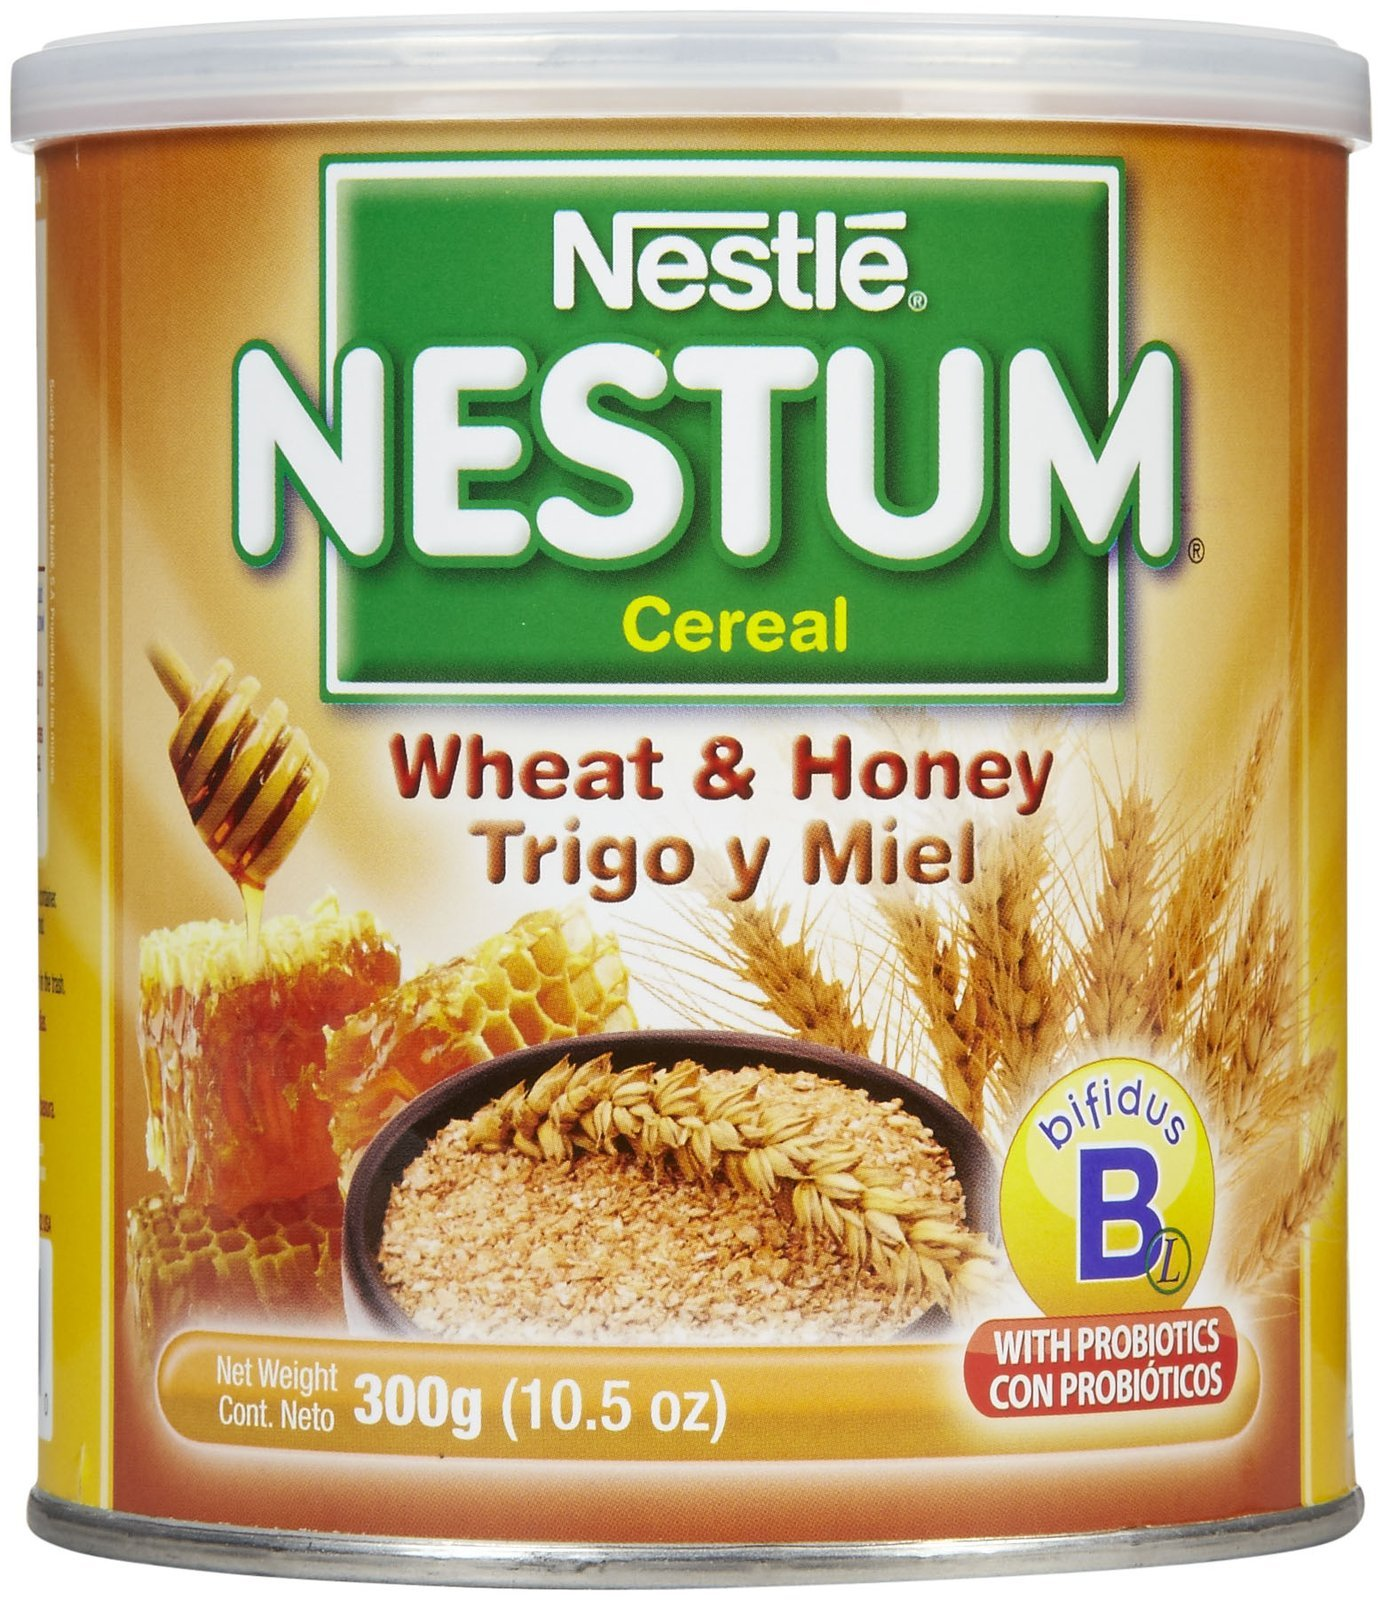 Nestum Baby Cereal - Wheat and Honey - 10.5 oz - 12 Pack